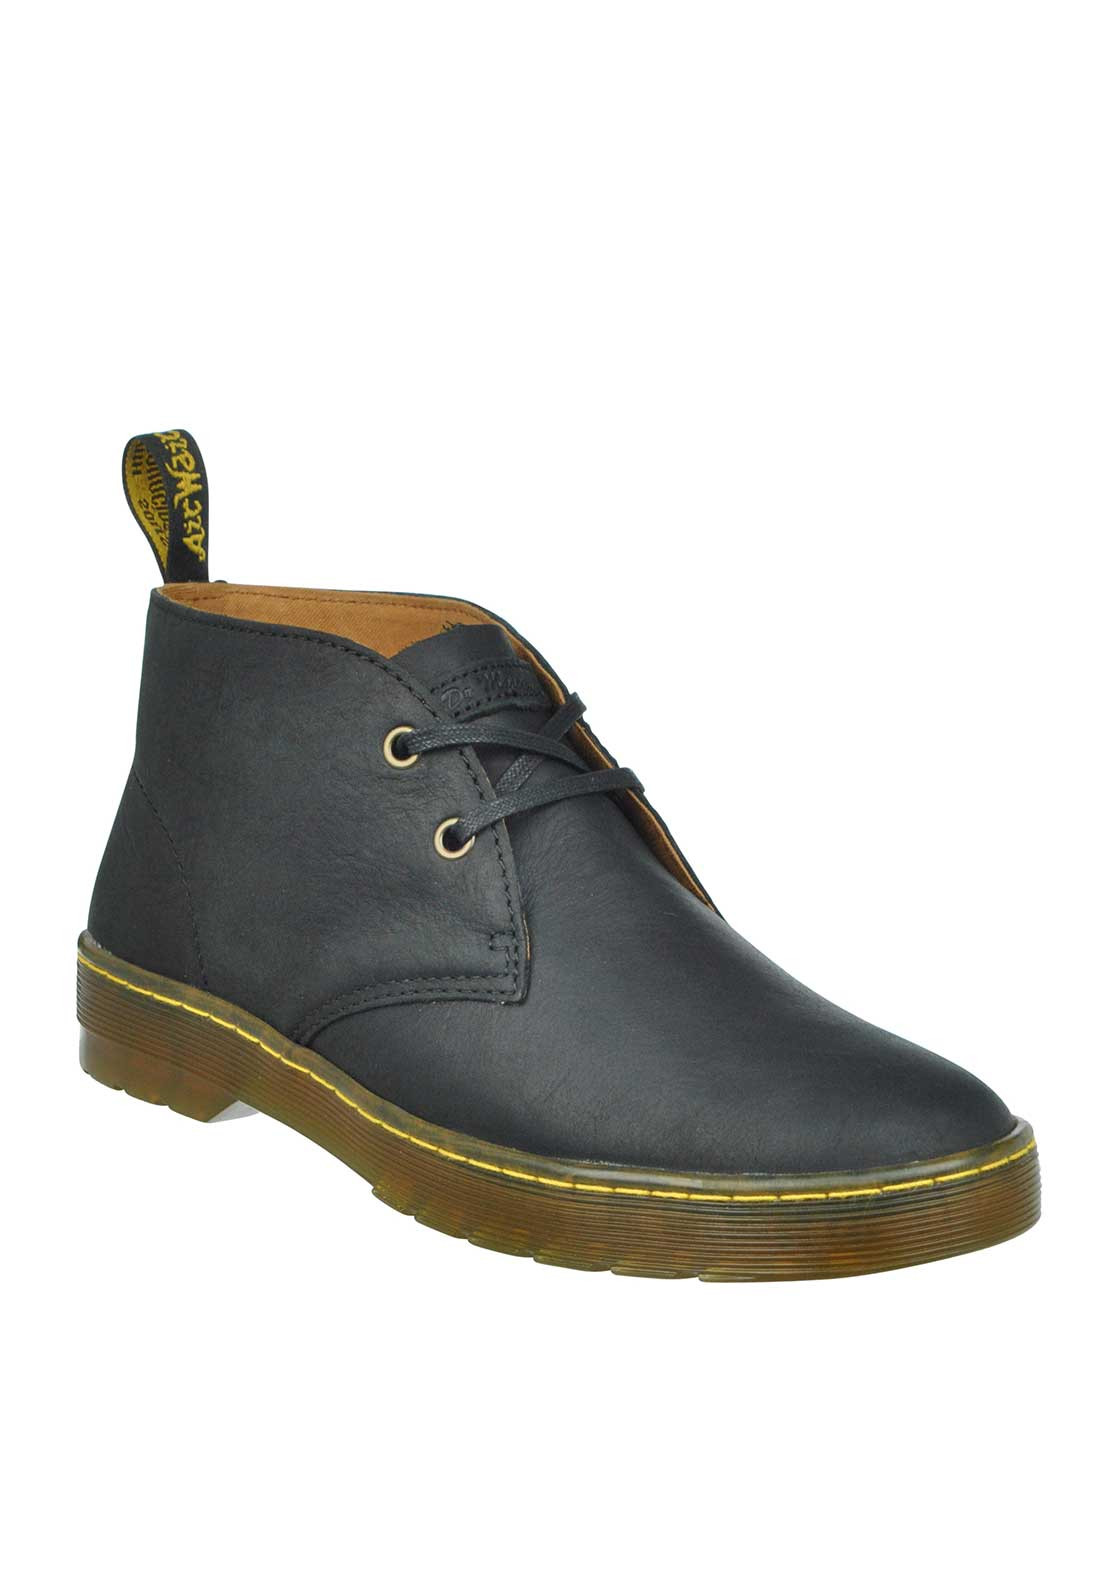 Dr Martens Cabrillo Leather Laced Boots, Black